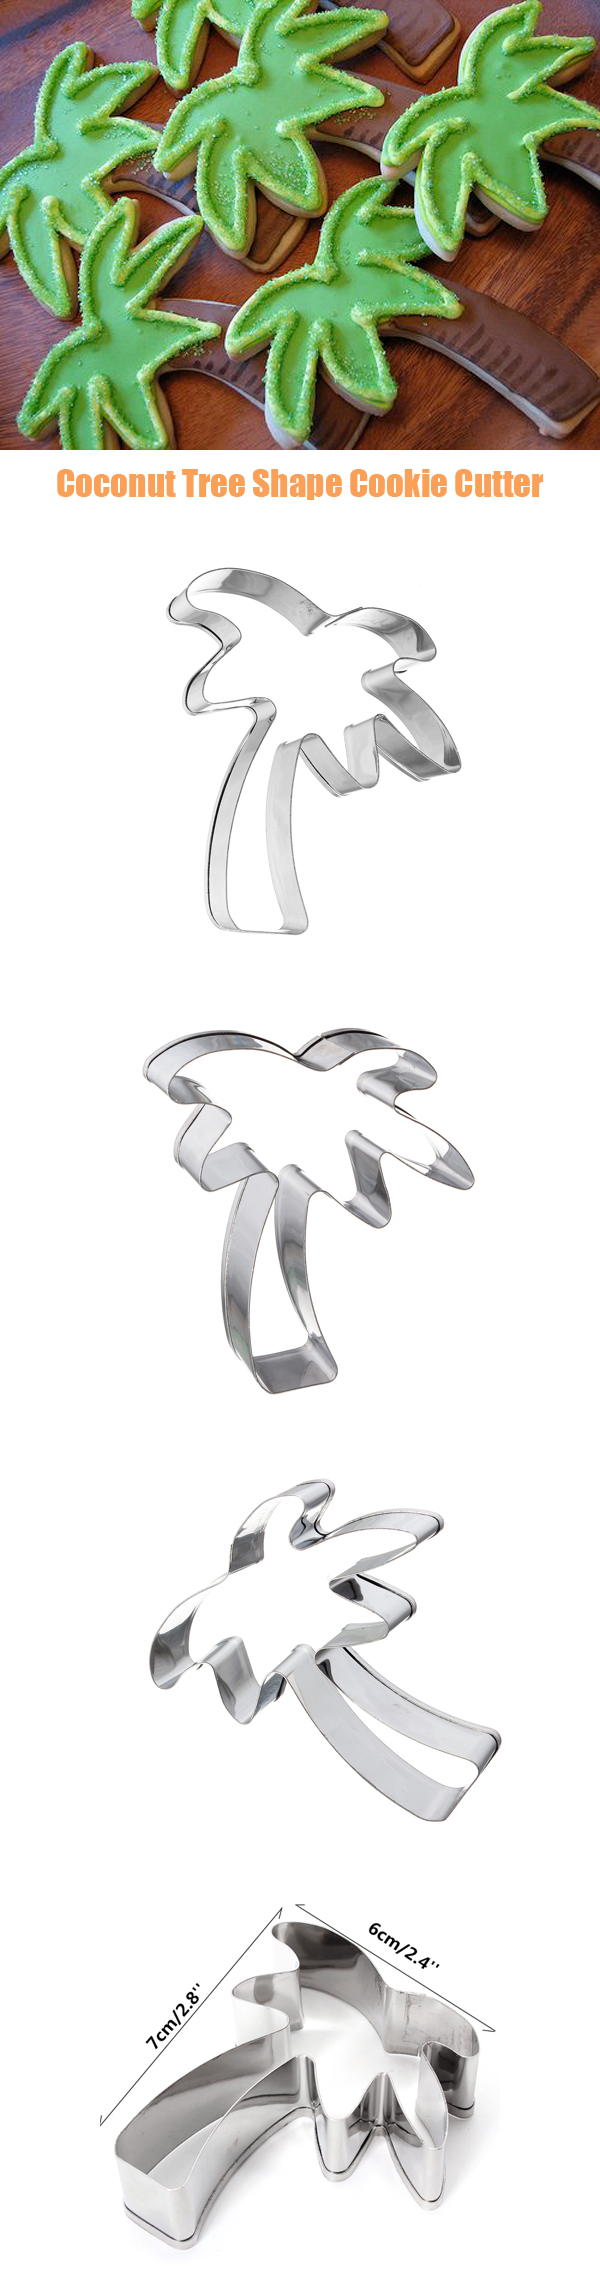 Coconut Tree Shape Stainless Steel Cookie Cutter Cake Baking Mold